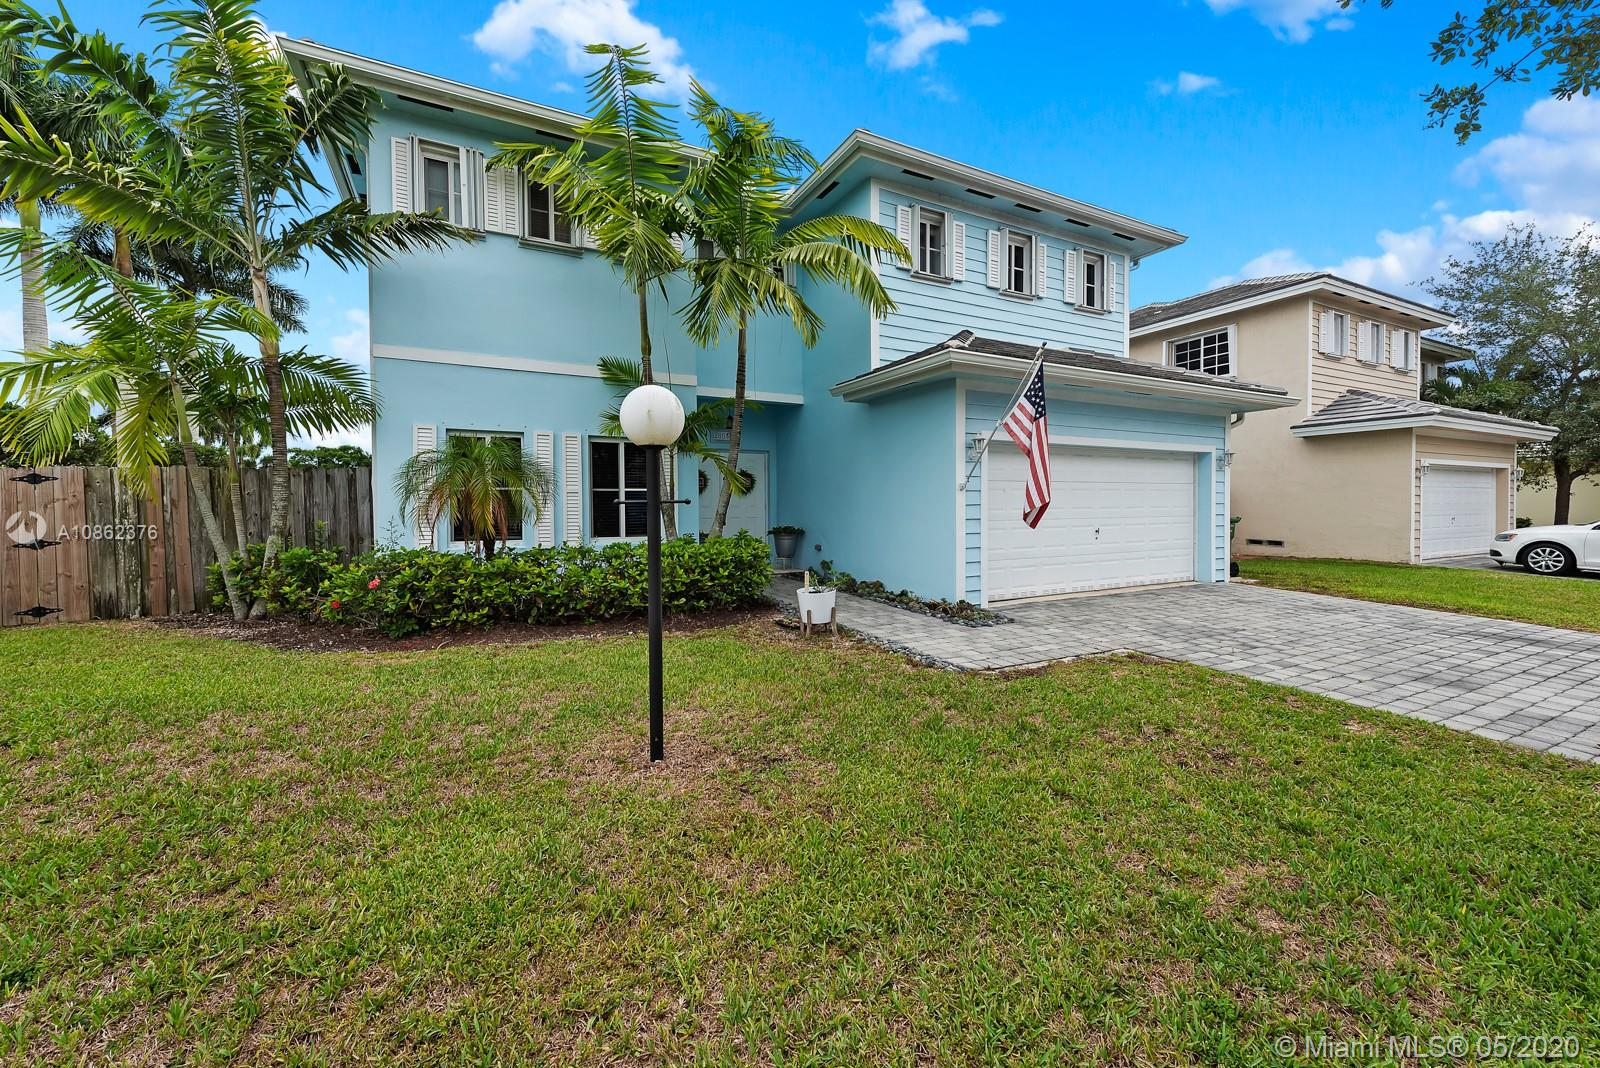 2884 NE 3rd Dr Property Photo - Homestead, FL real estate listing